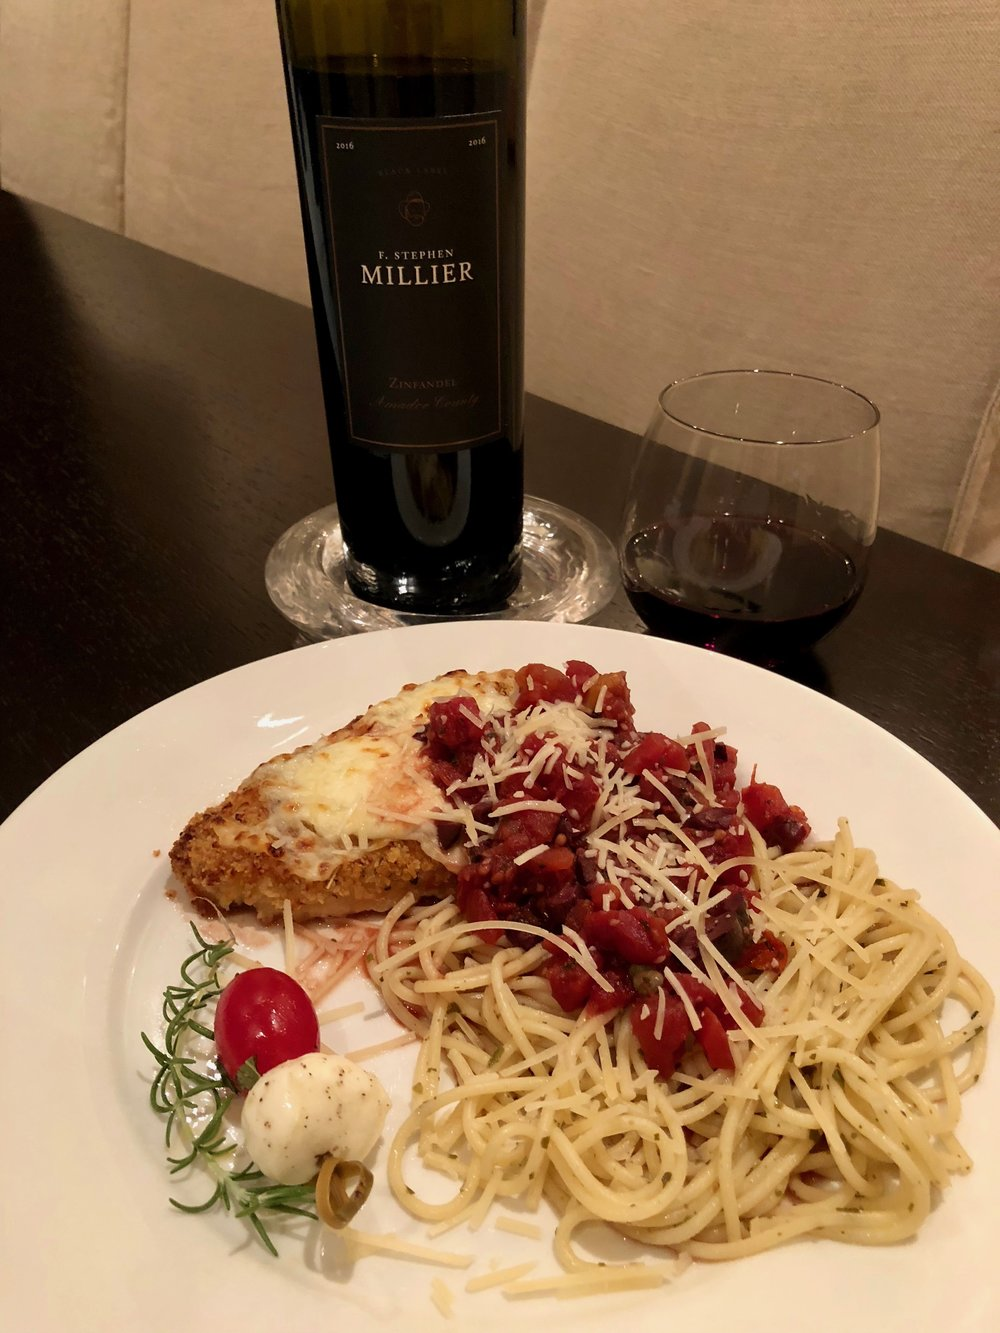 - F. Stephen Millier Black Label Zinfandel Amador County 2016 is initially dark fruit-forward but tannins balance it well so it ends up pairing nicely with our spicy Puttanesca Sauce. Message us if you want this awesome family recipe!List $24 Angel Price $14